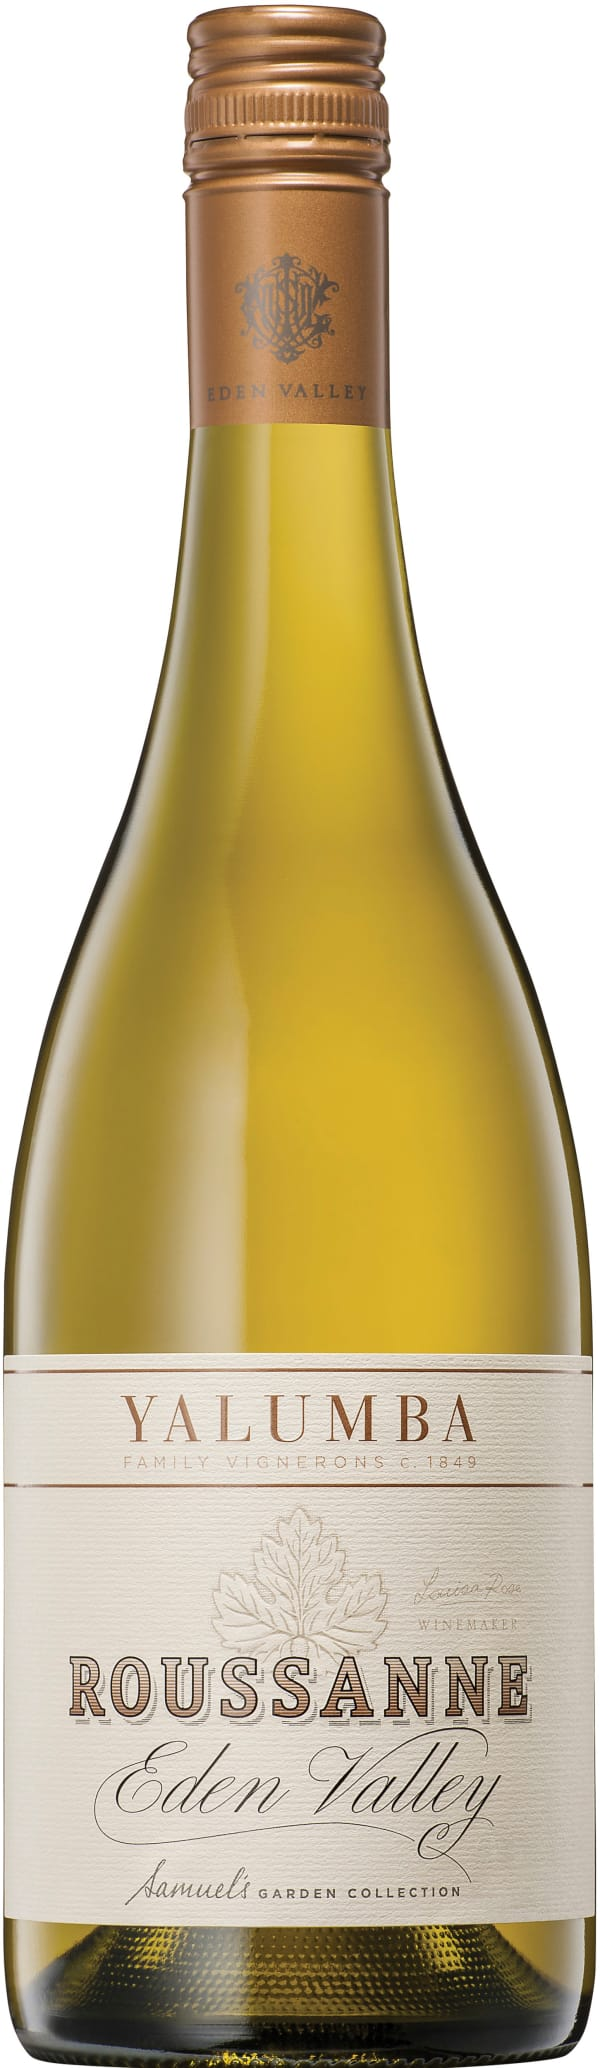 Yalumba Eden Valley Roussanne 2016